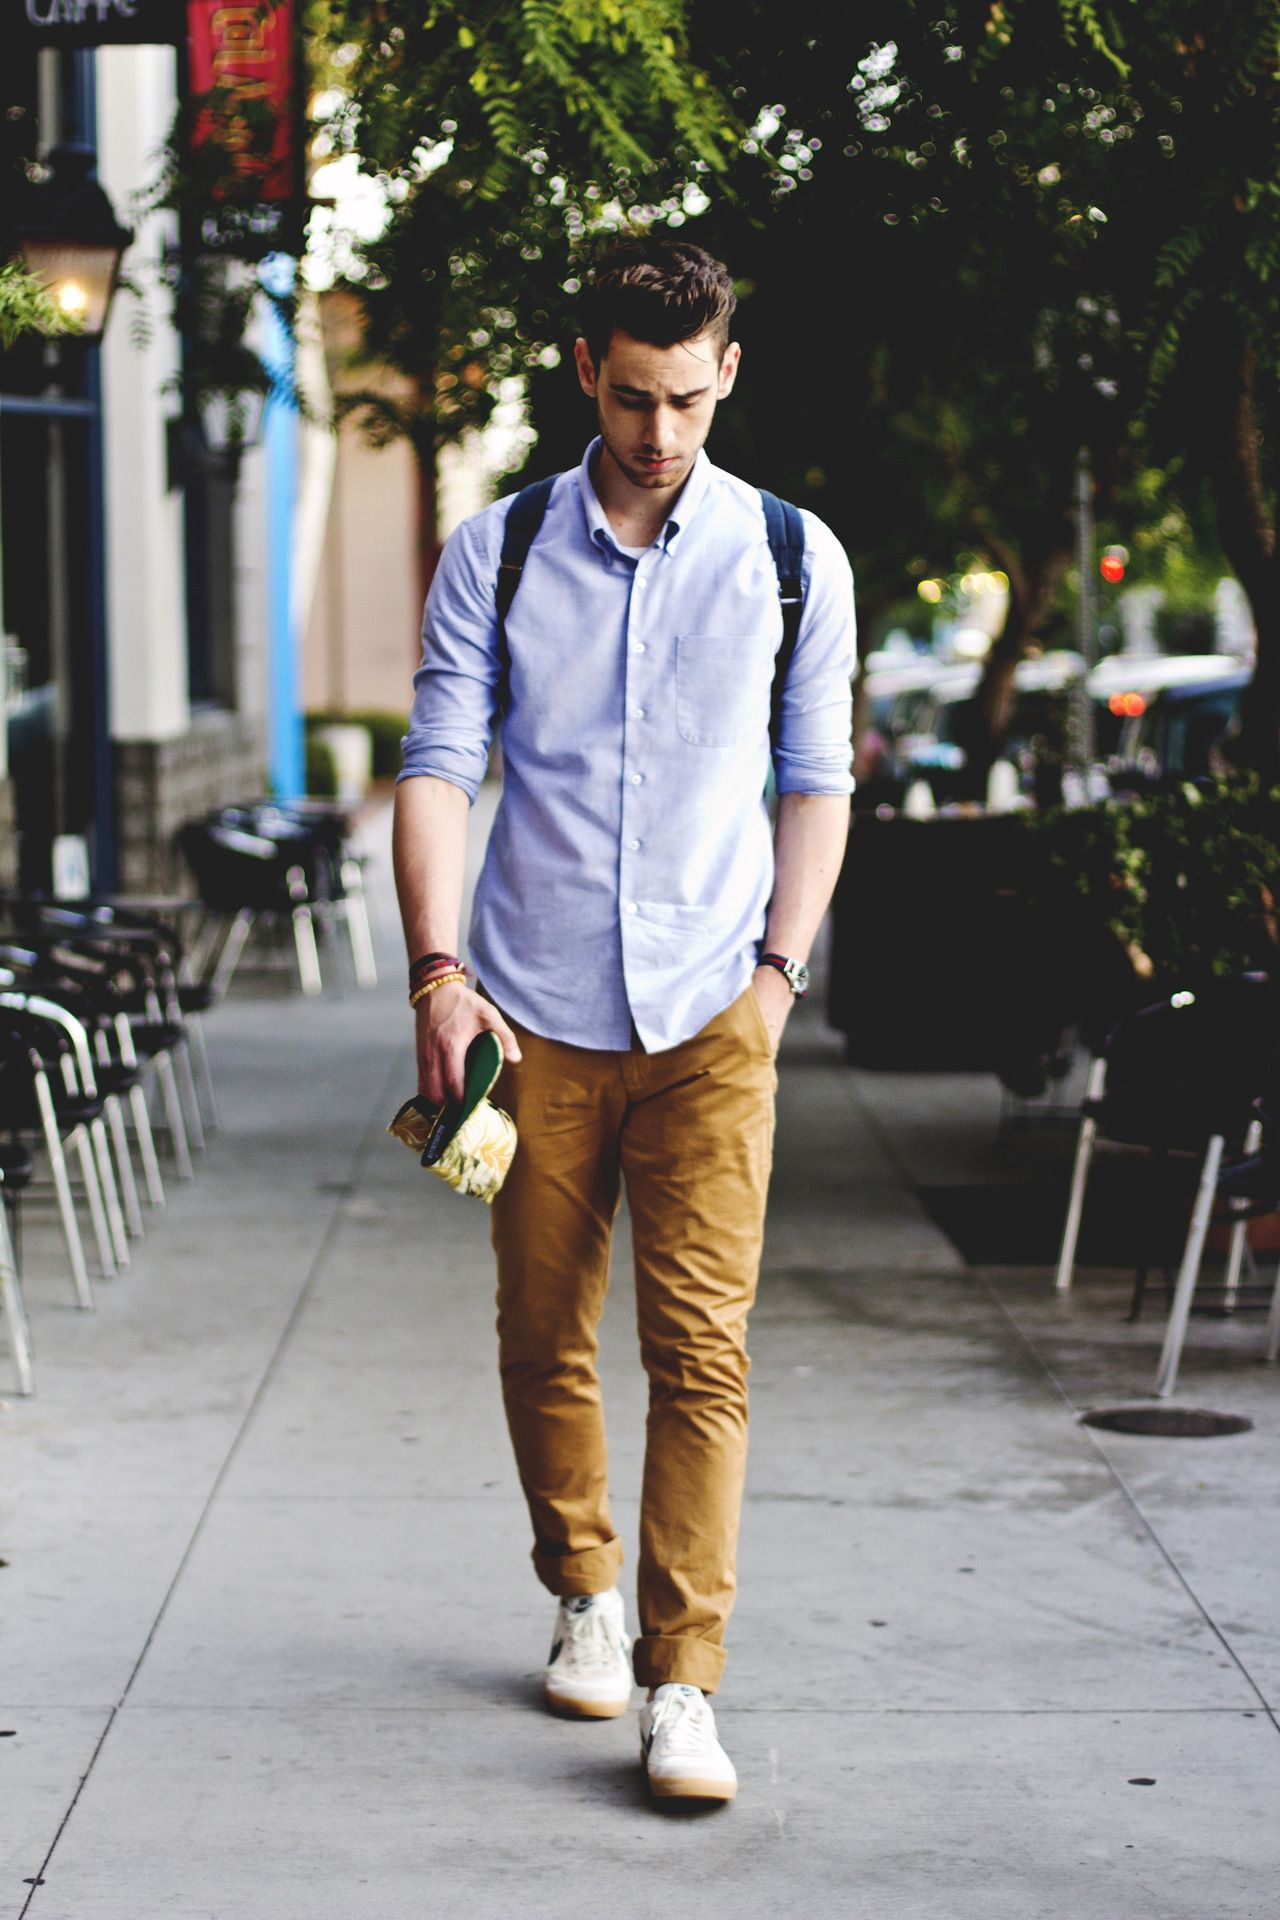 The Street Style | Casual shirts, Men shirt style, Mens outfits